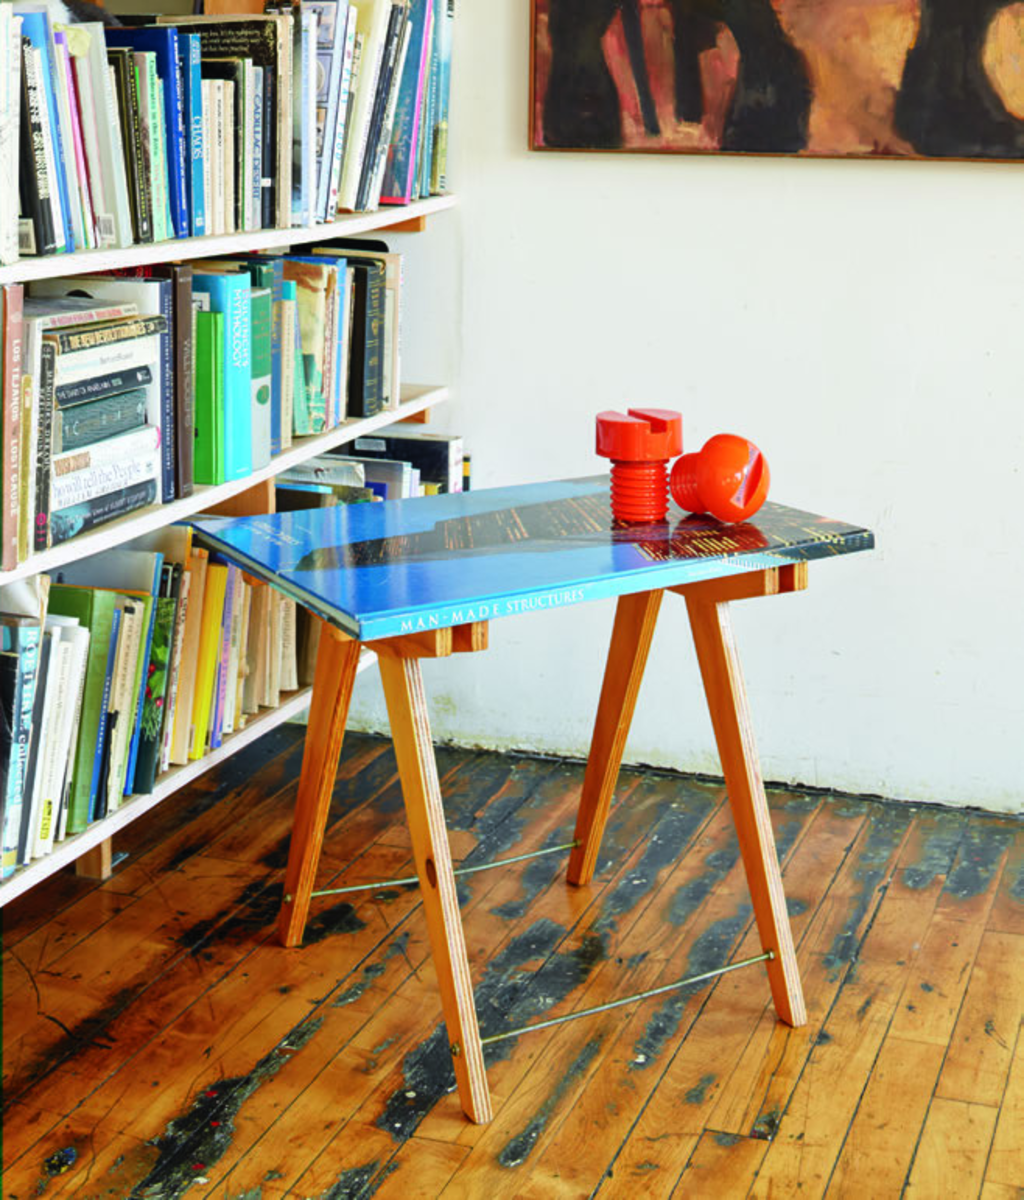 This guide will show you how to build your own DIY coffee table out of a large book just like this one.